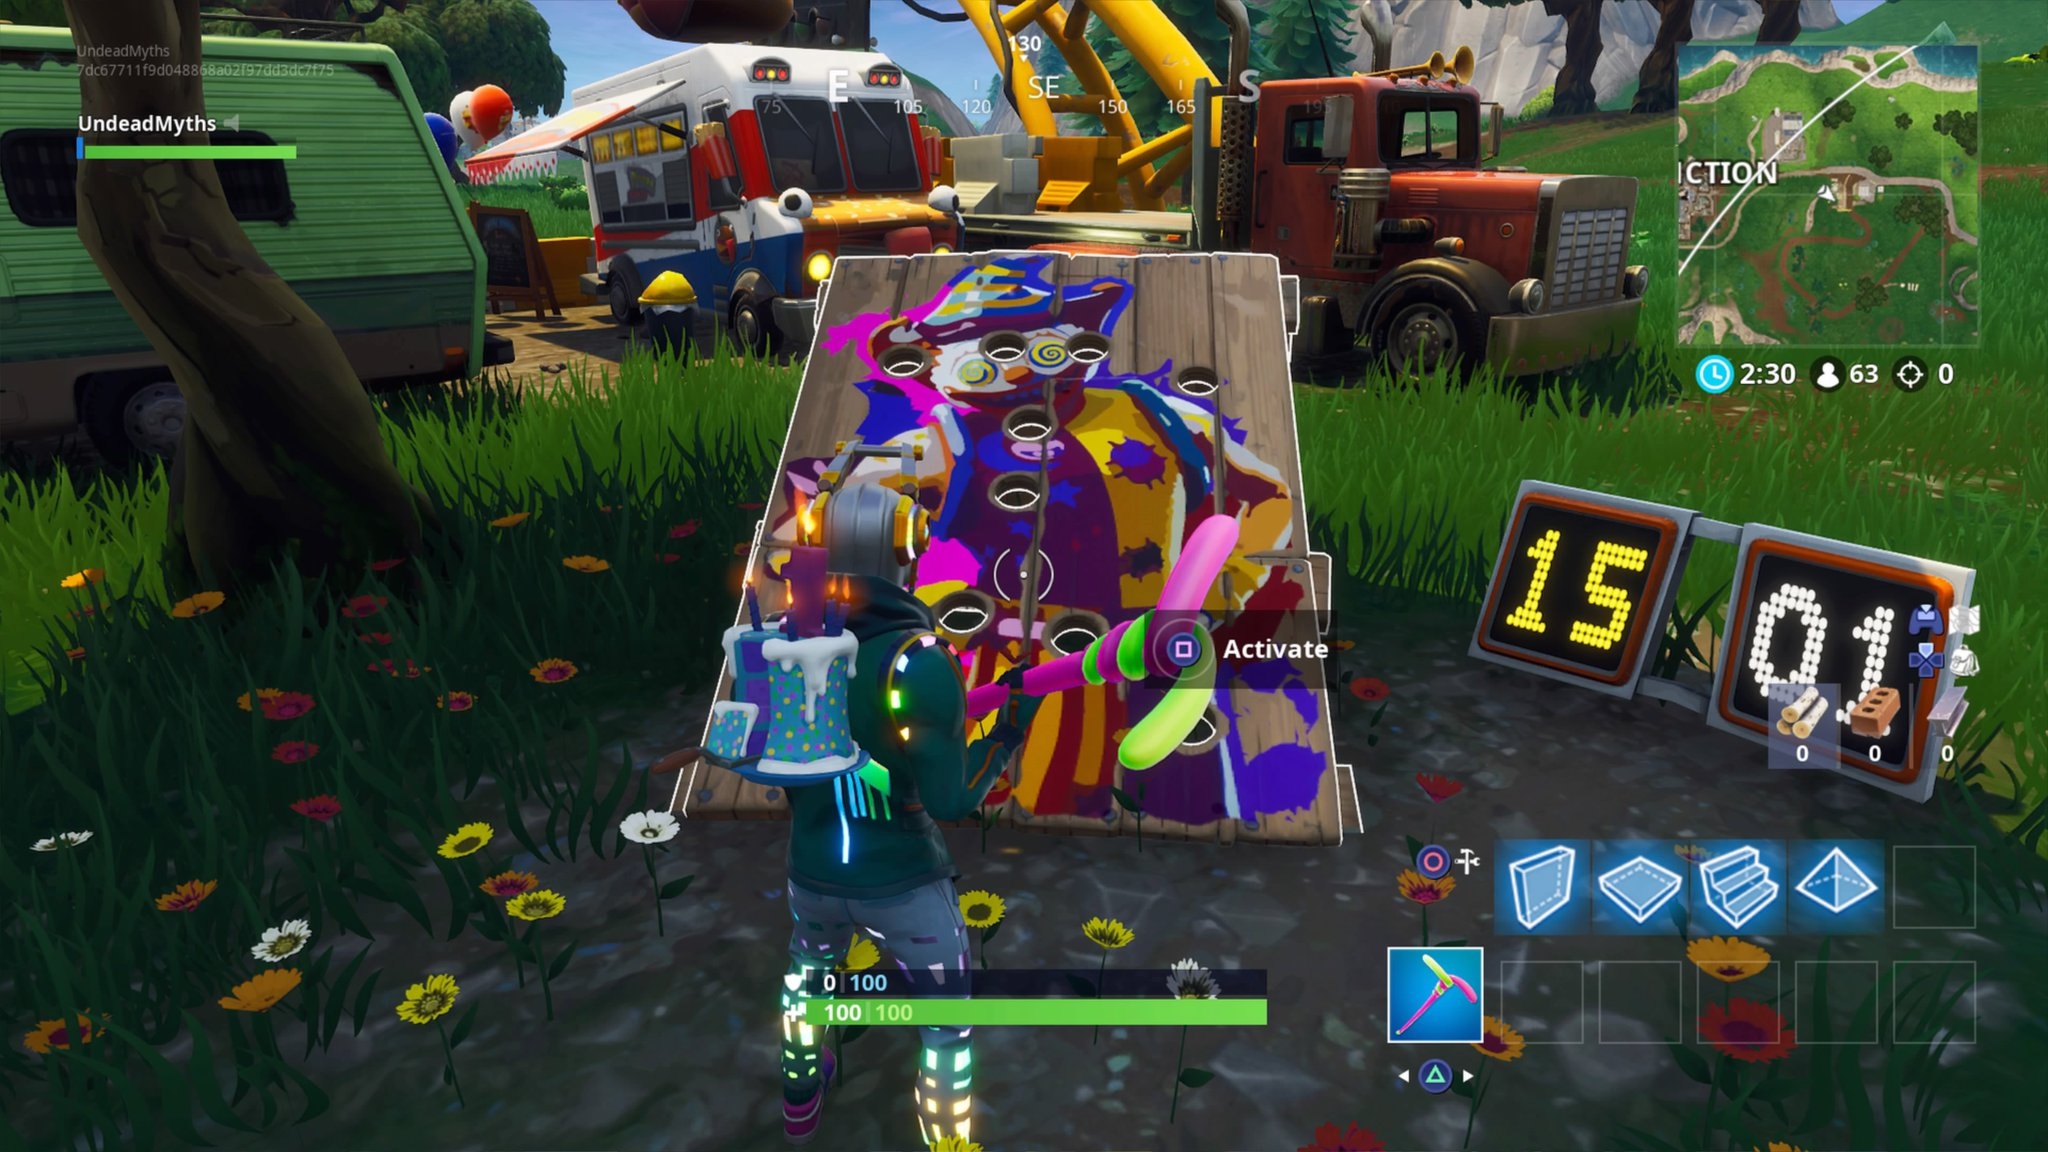 article continues below - fortnite carnival locations